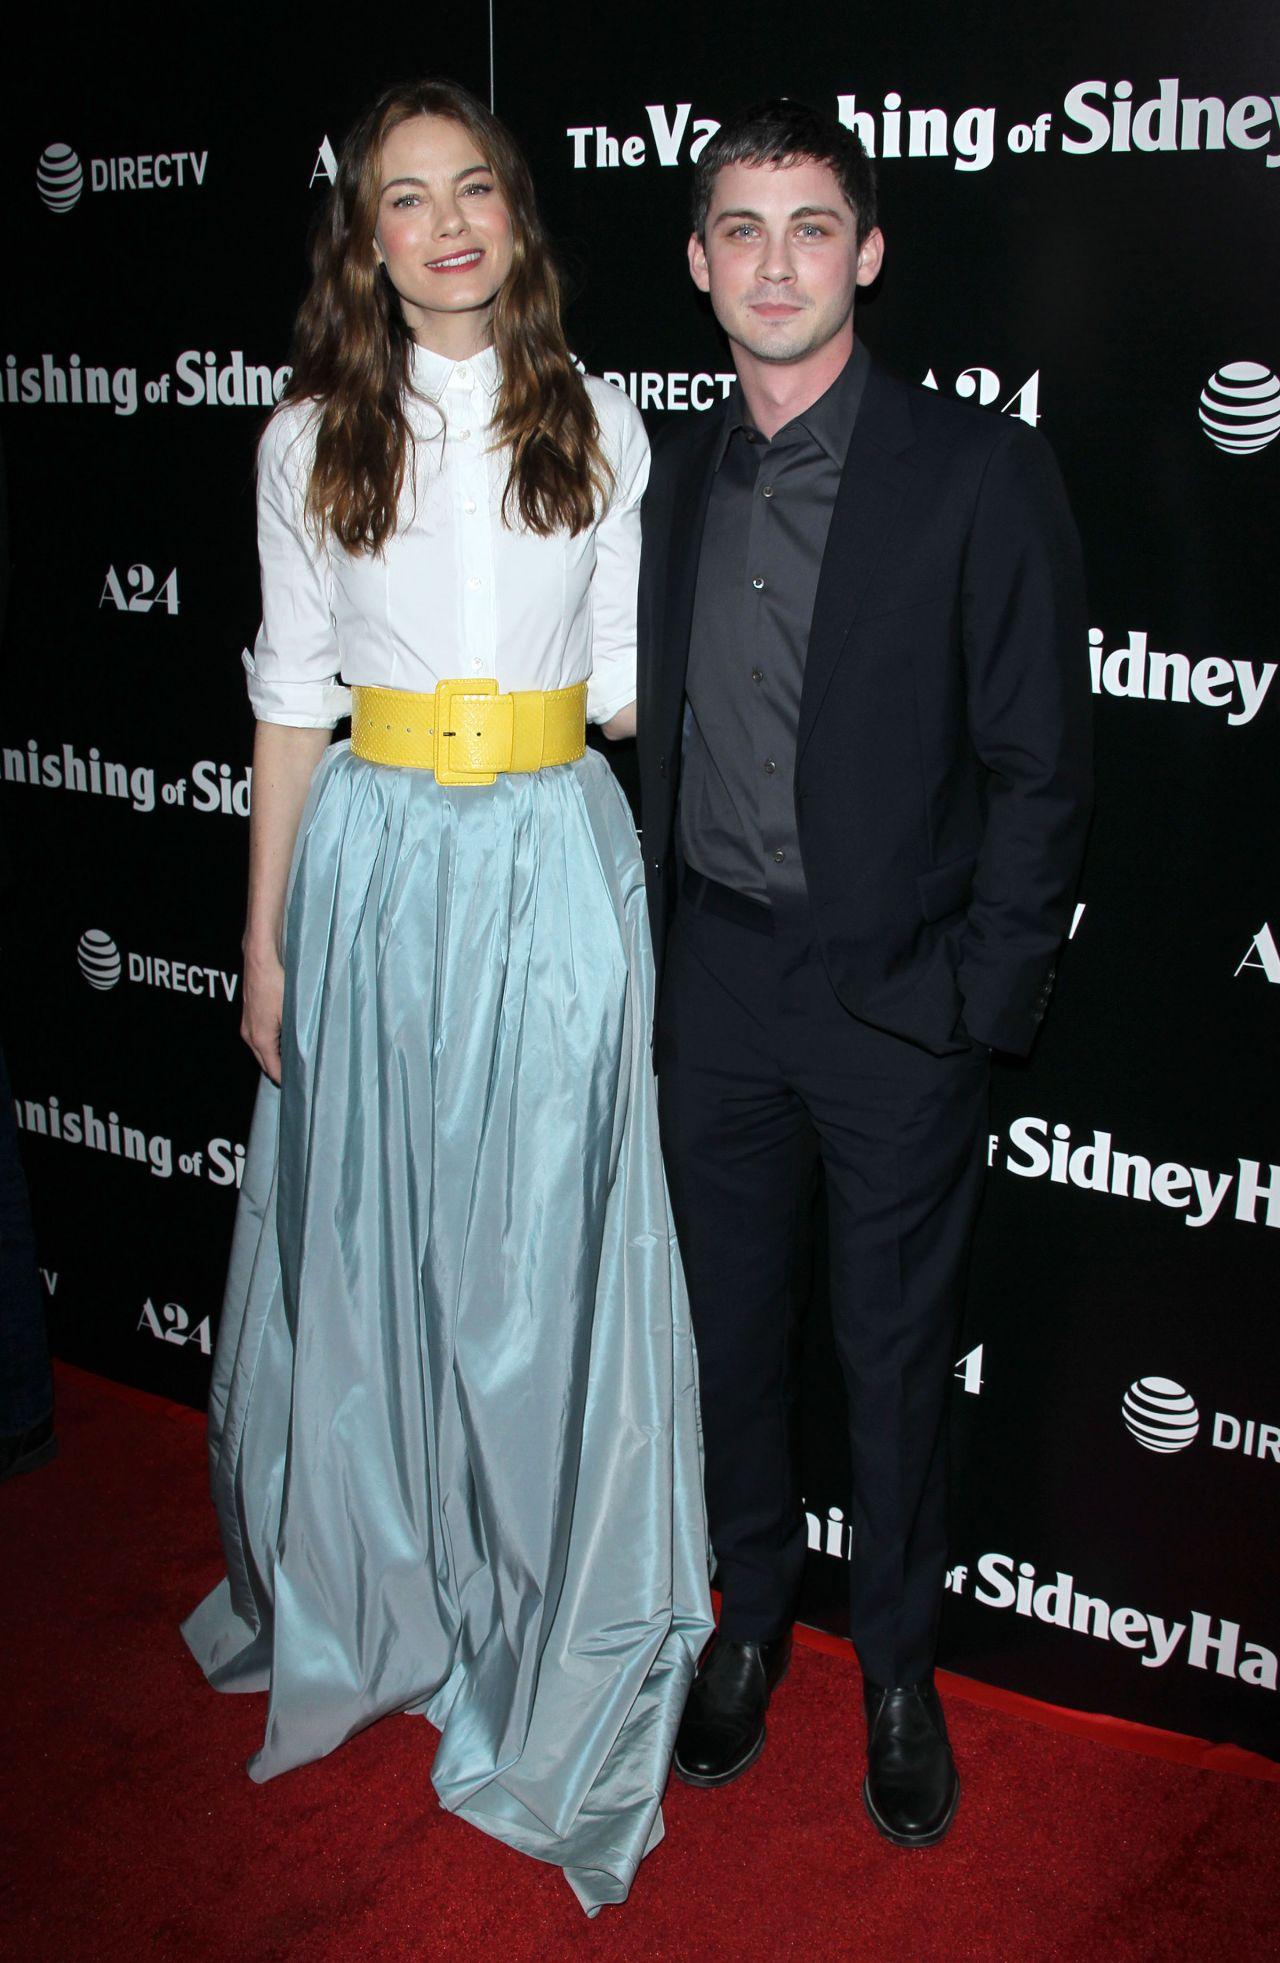 http://celebmafia.com/wp-content/uploads/2018/02/michelle-monaghan-the-vanishing-of-sidney-hall-premiere-in-la-0.jpg